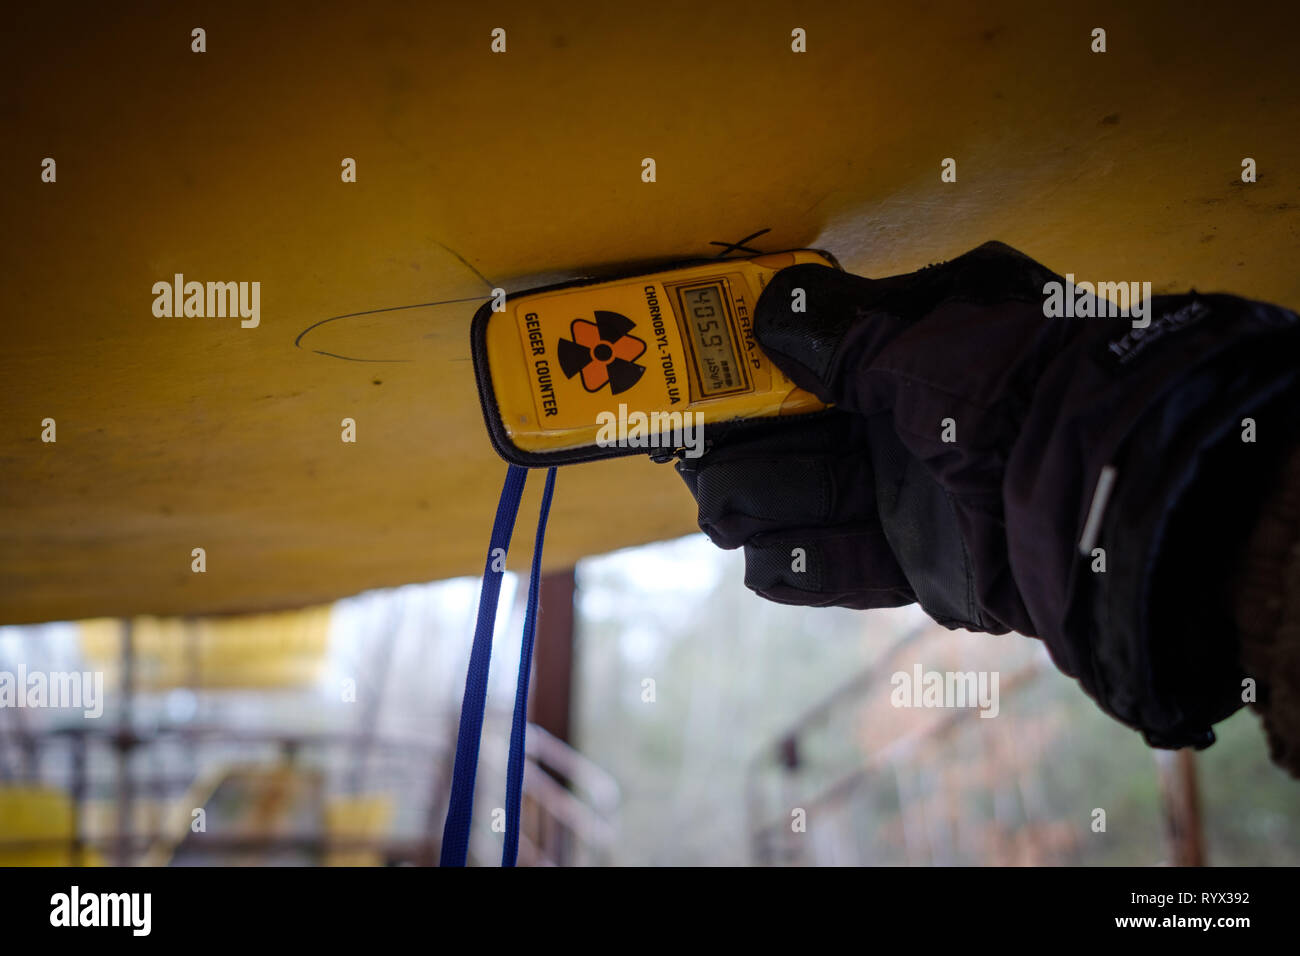 High radiation readings on geiger counter in Pripyat, Chernobyl nuclear power plant exclusion zone - Stock Image